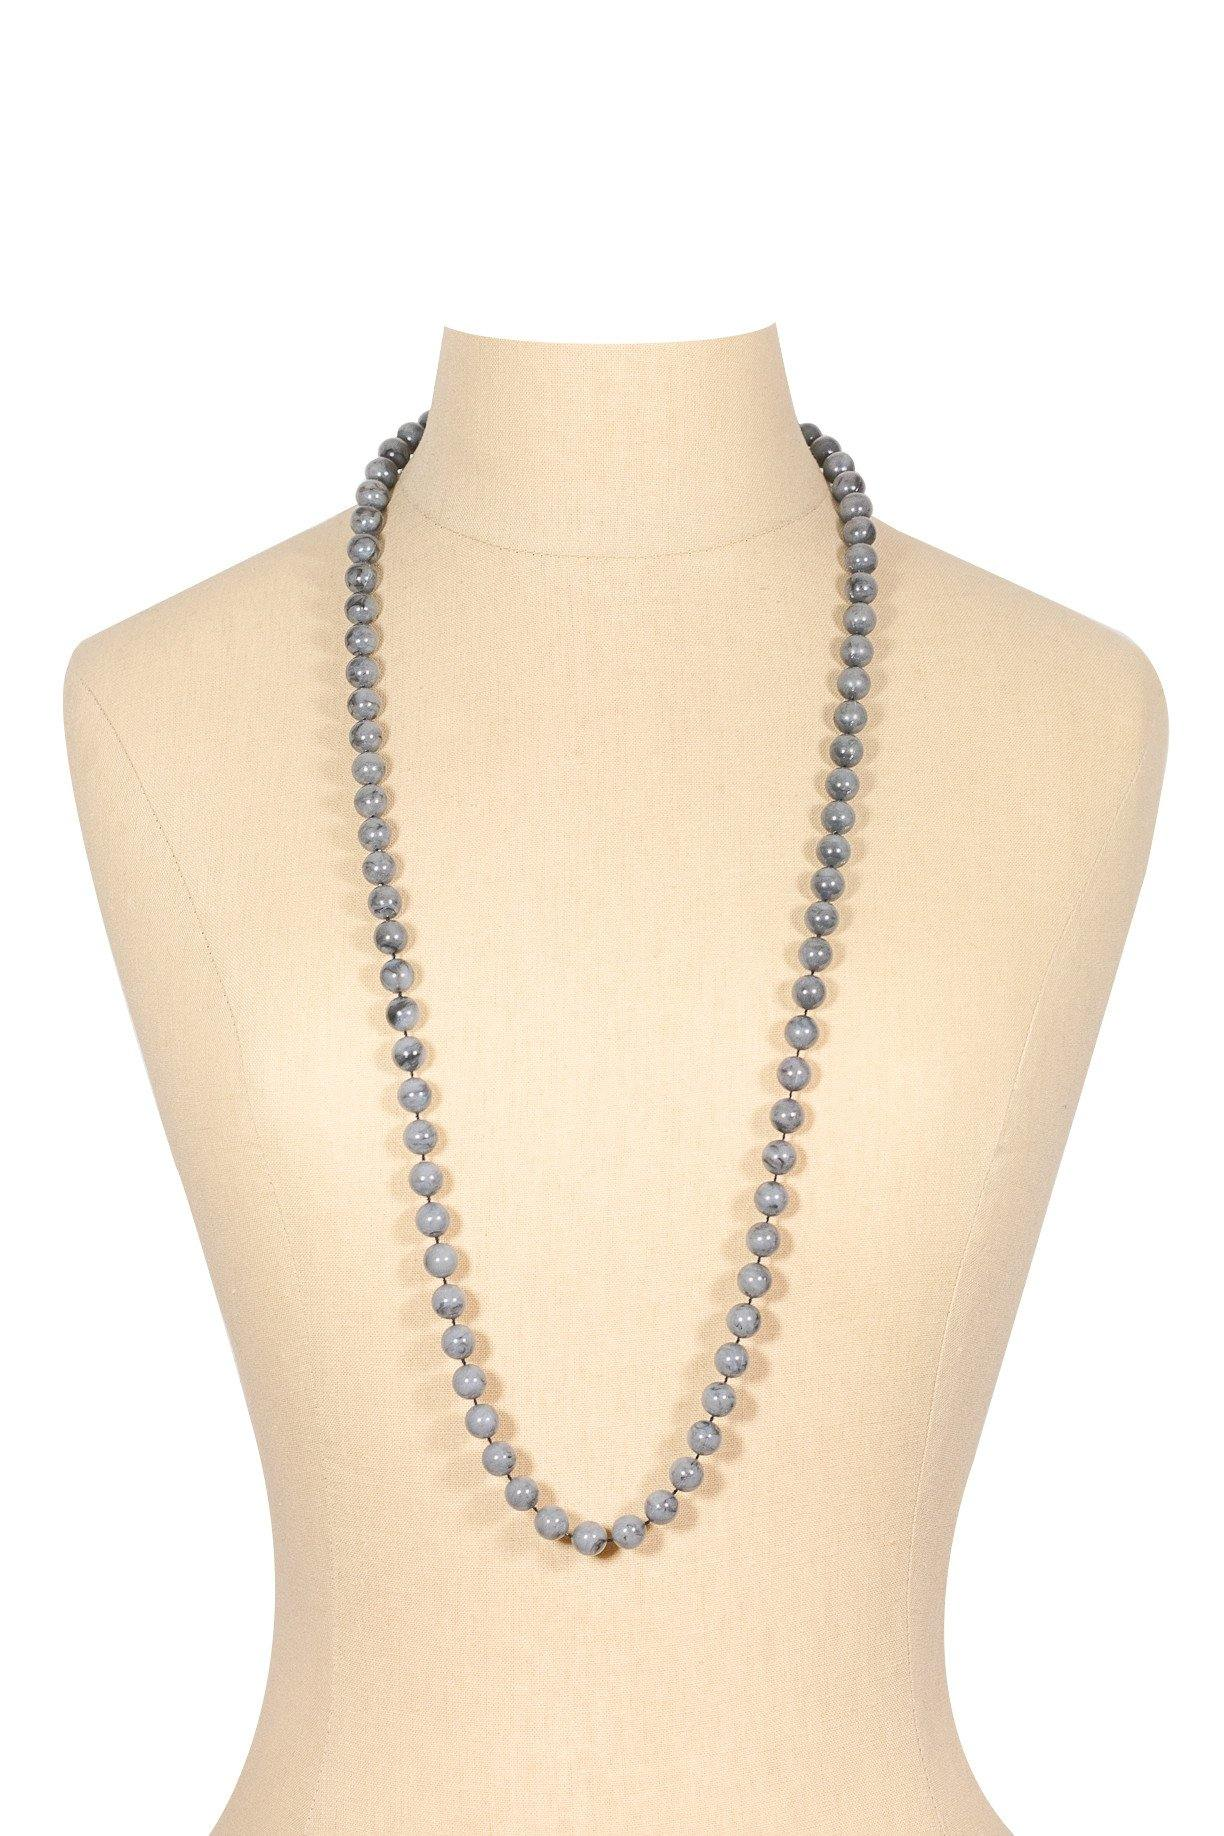 60's__Sarah Coventry__Grey Beaded Necklace